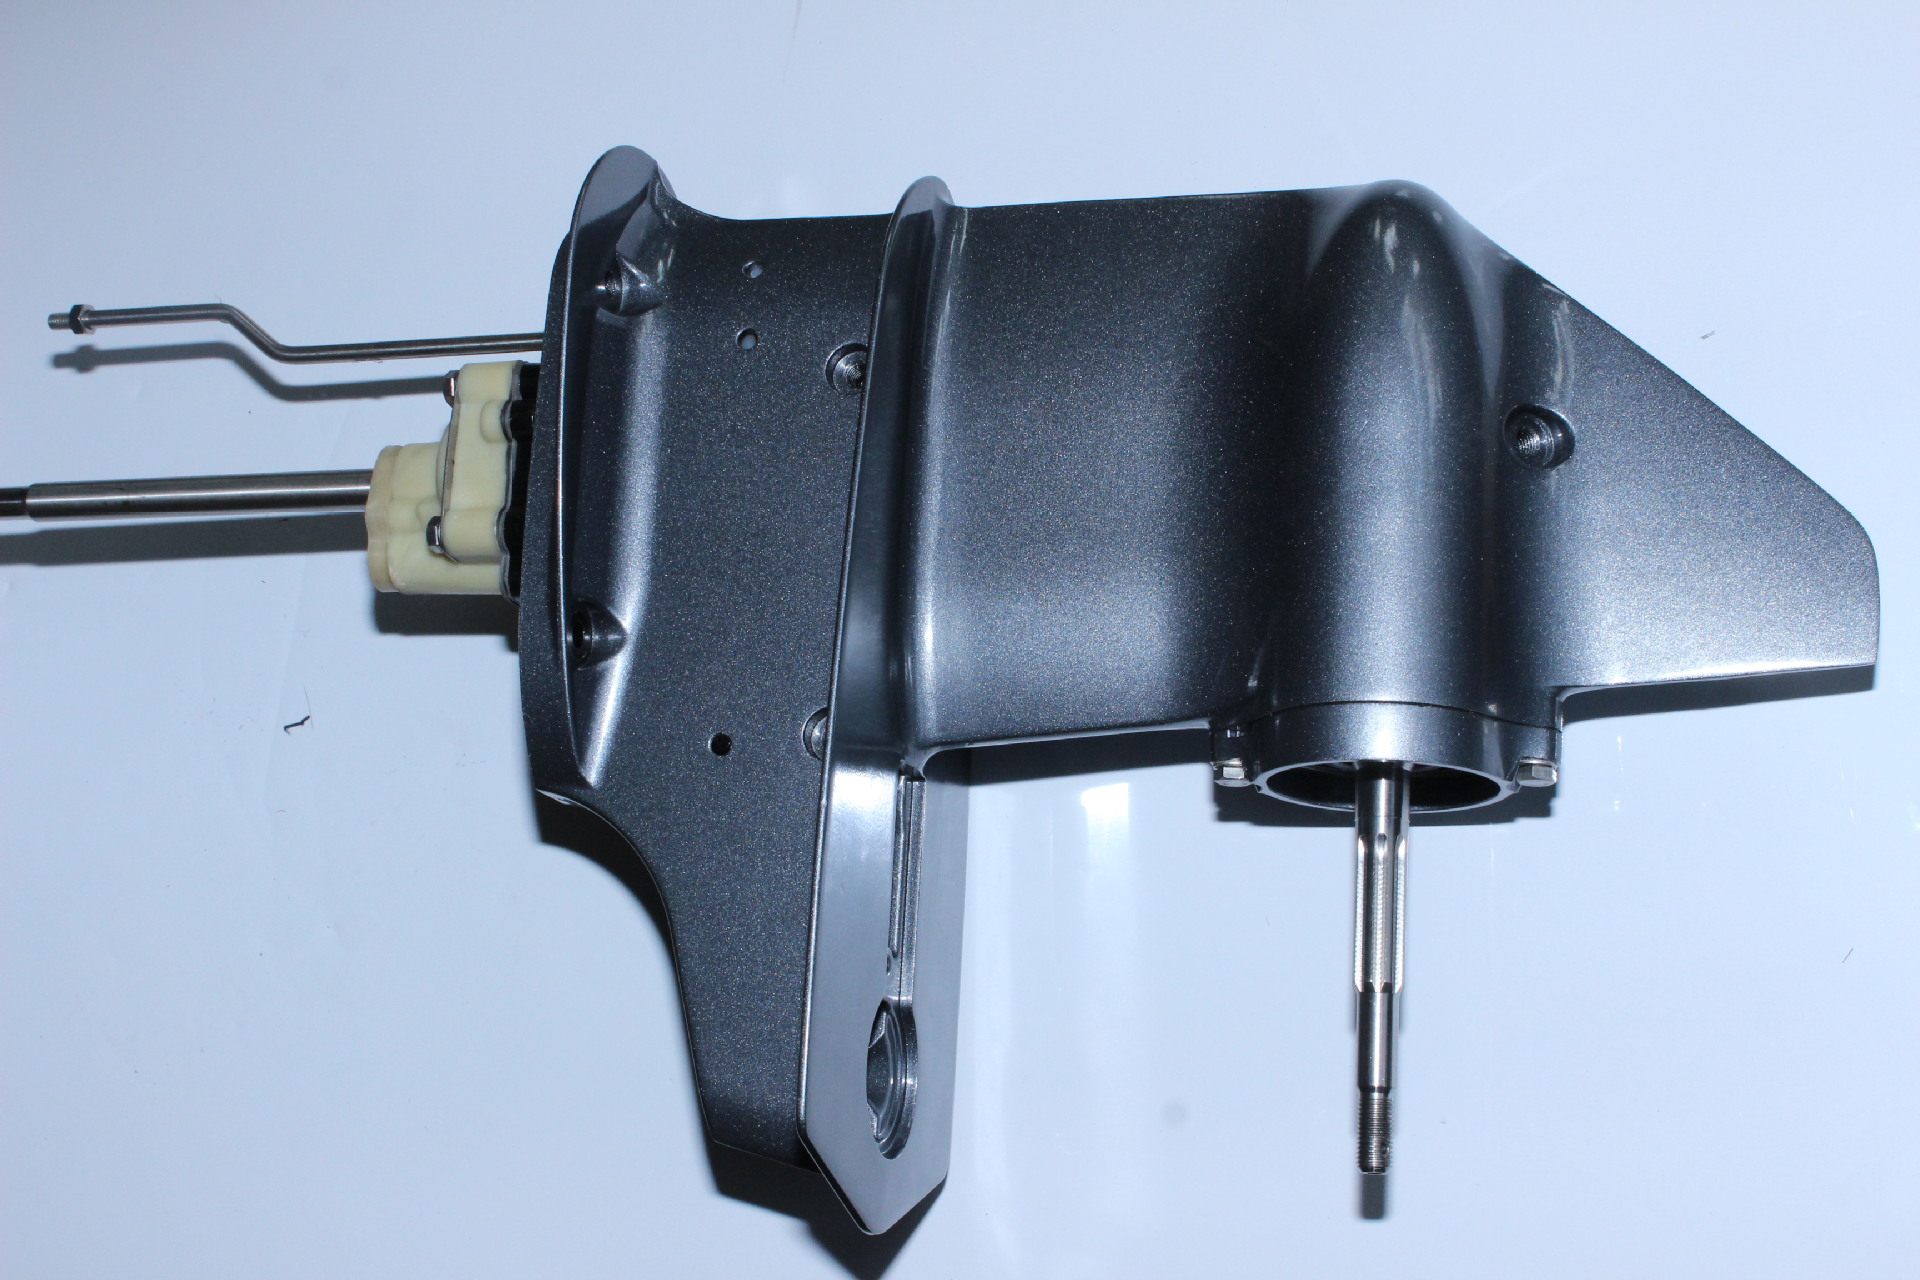 US $550 0 |Free shipping gearbox assembly for YAMAHA 2 stroke 15 hp 6B4  model outboard parts-in Personal Watercraft Parts & Accessories from